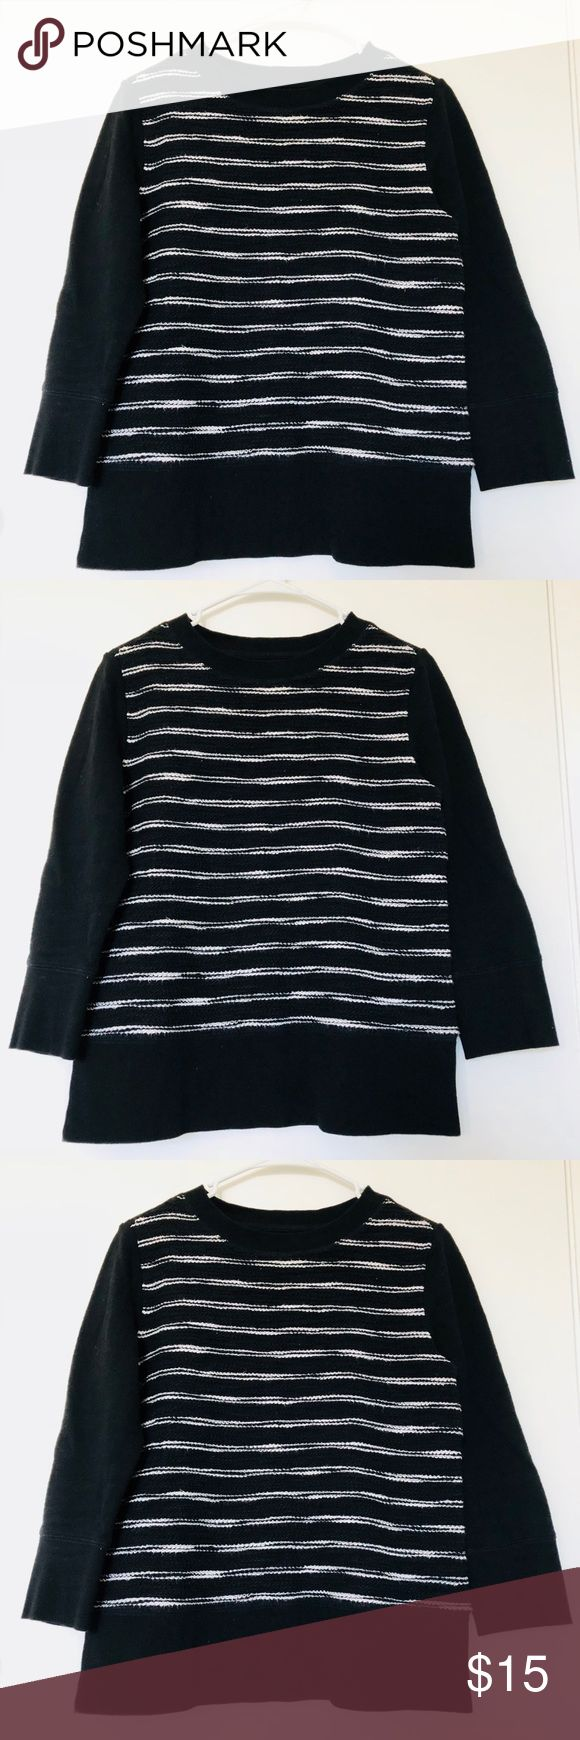 Lou & Grey Black and White Sweatshirt Top Sz S Lou And Grey Loft Women's  Small Sweatshirt Striped Black and White 100% Cotton 3/4 sleeves   Approximate measurements Pit to pit: 18.5 inches Sleeve length: 18.5 inches Length:22.5 inches Lou & Grey Tops Sweatshirts & Hoodies